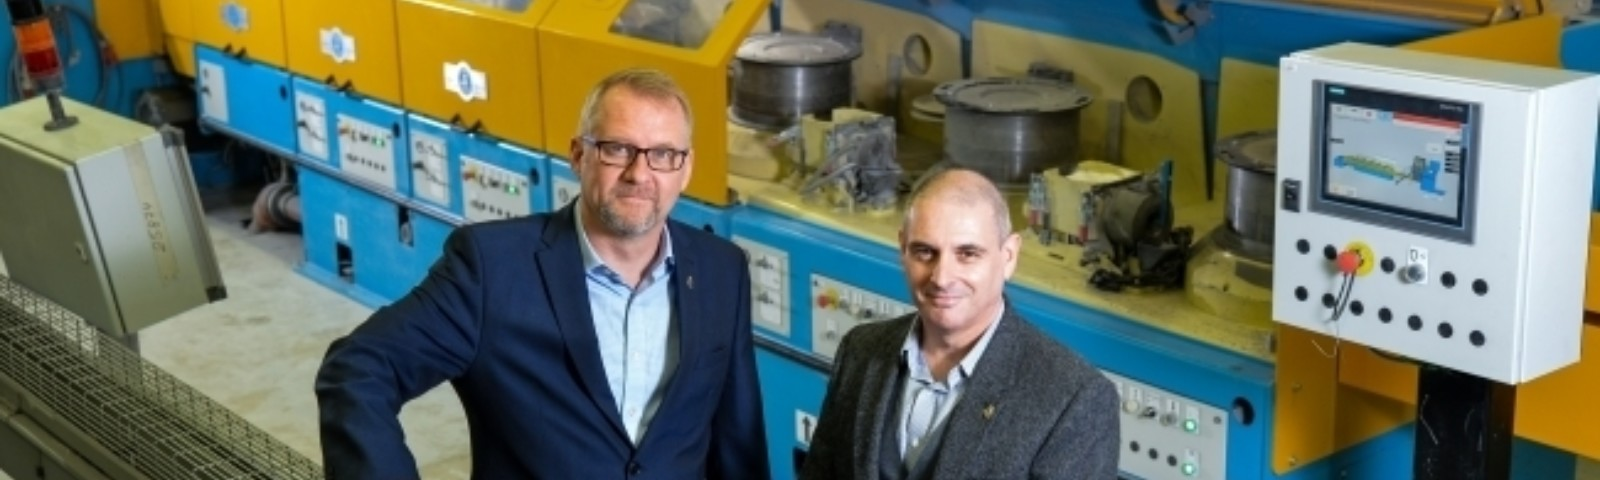 Simon Spinks Managing Director of Harrison Spinks and Richard Essery Managing Director of Harrison Spinks Components at the wire drawing line e1524080633435